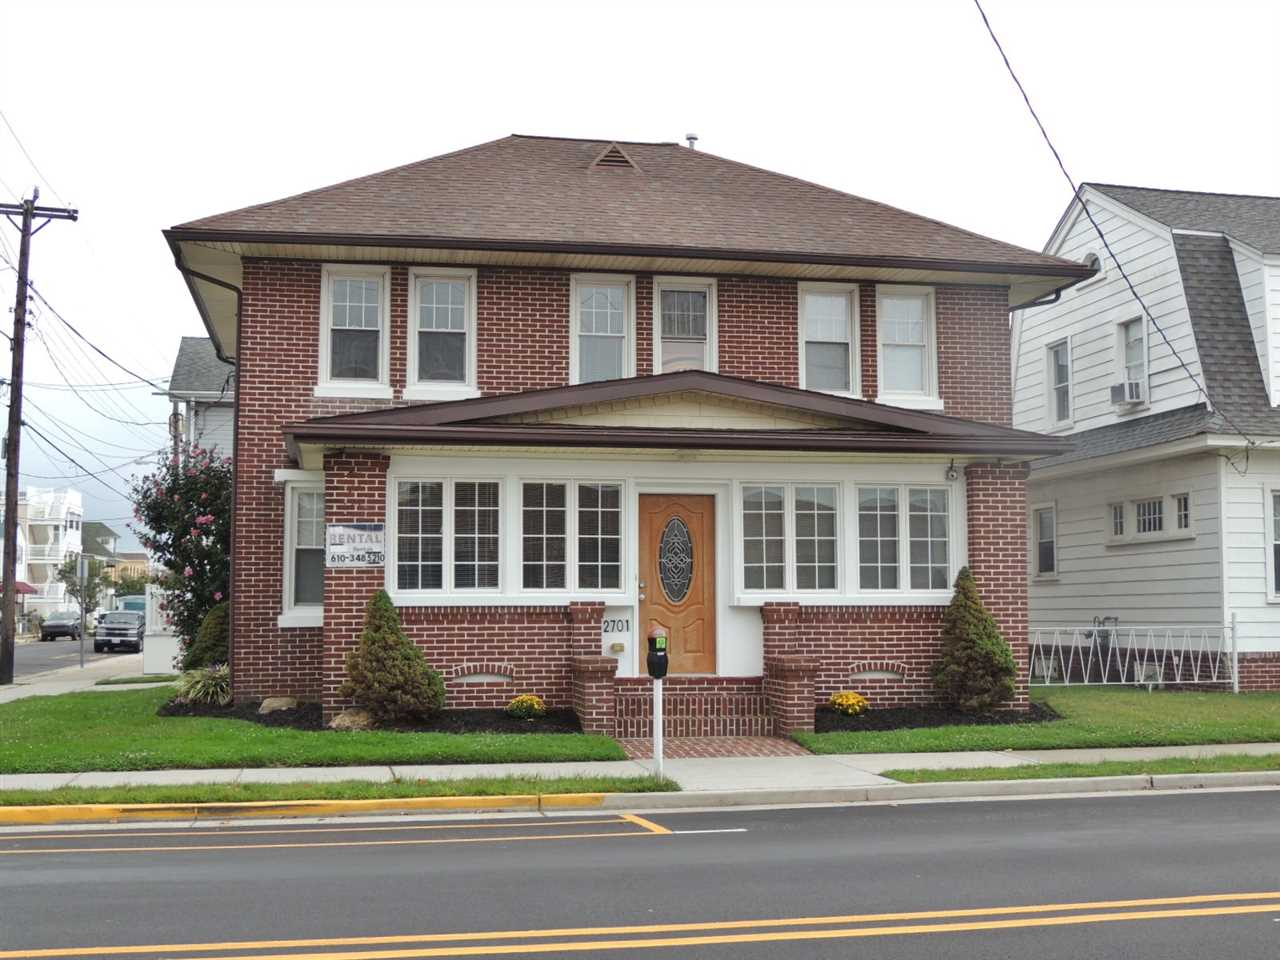 2701 Pacific, Wildwood